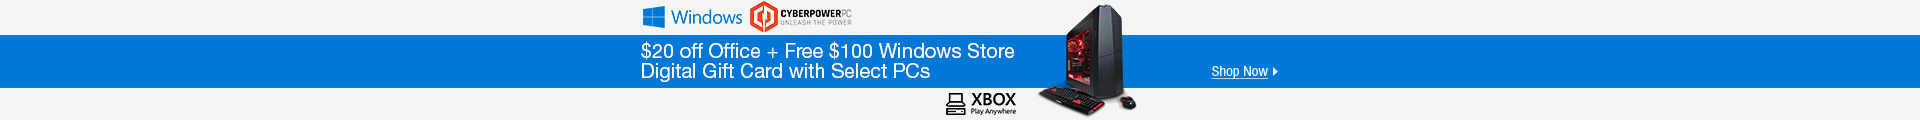 $20 off office + free $100 Microsoft store Credit with Select PCs